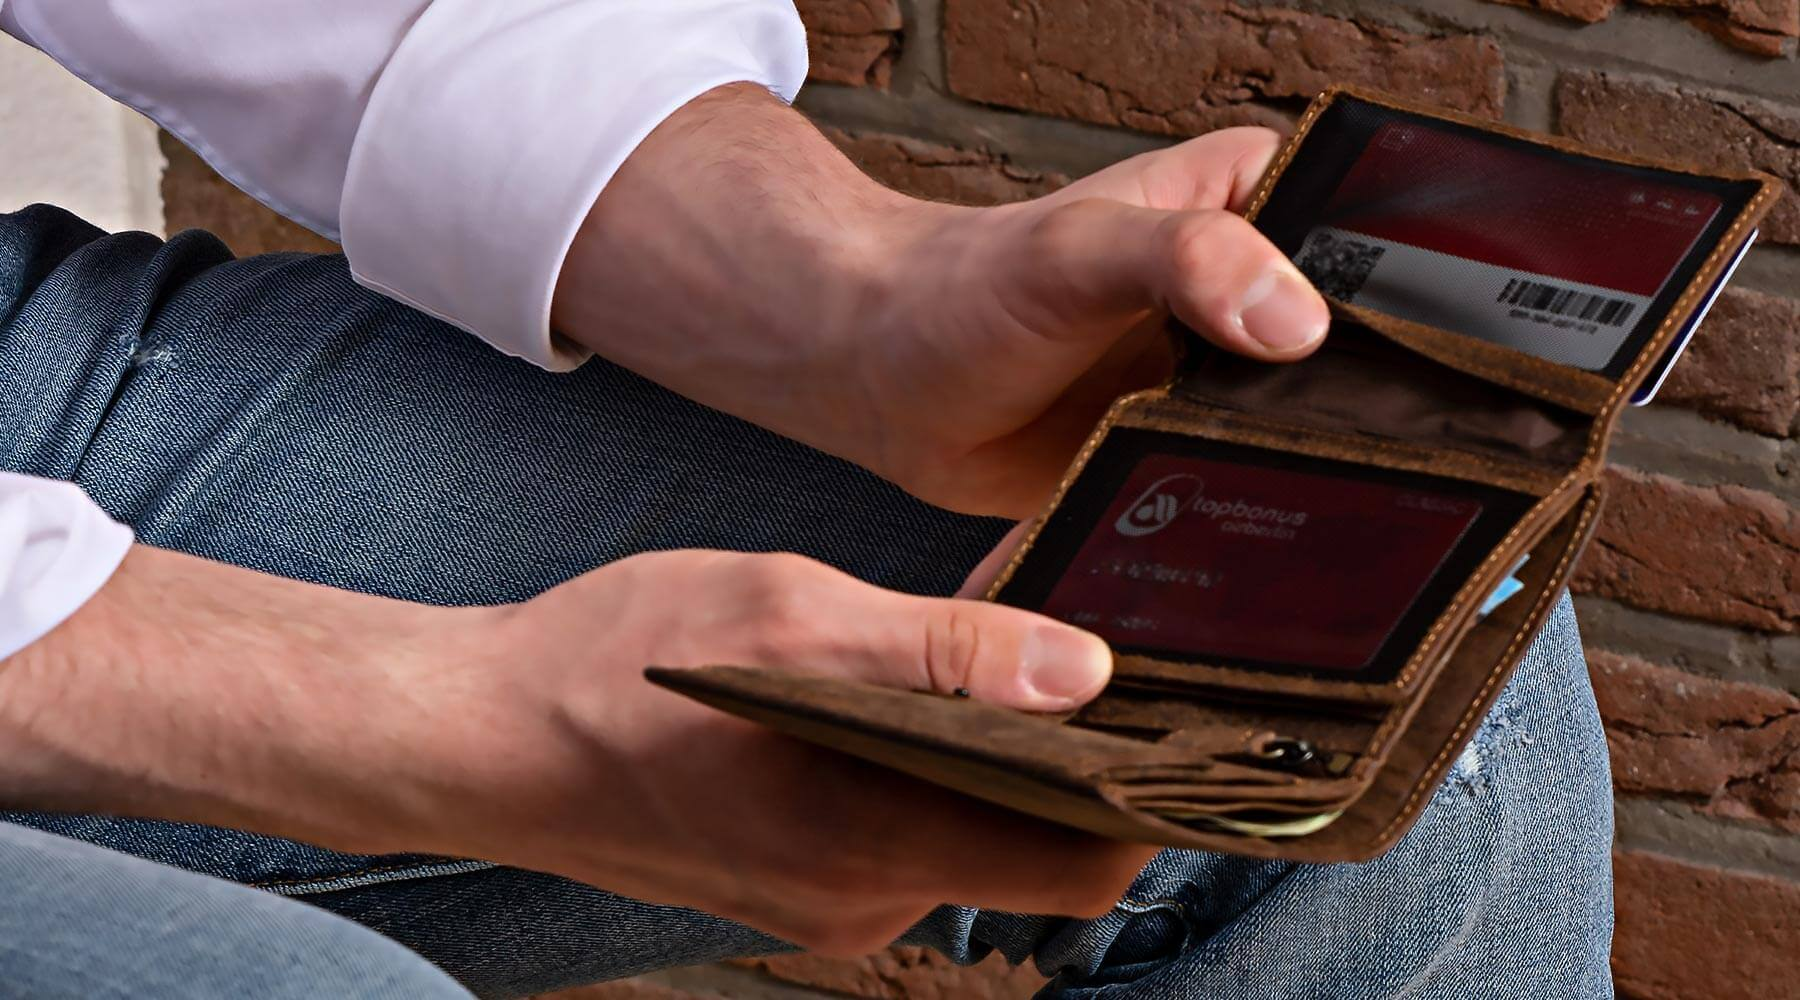 Men's Leather Wallet with strong RFID blocking technology made from full grain, top quality leather. Bifold, large or compact, coin compartment or minimalist, look good next time you pull out your wallet to pay! DiLoro Switzerland